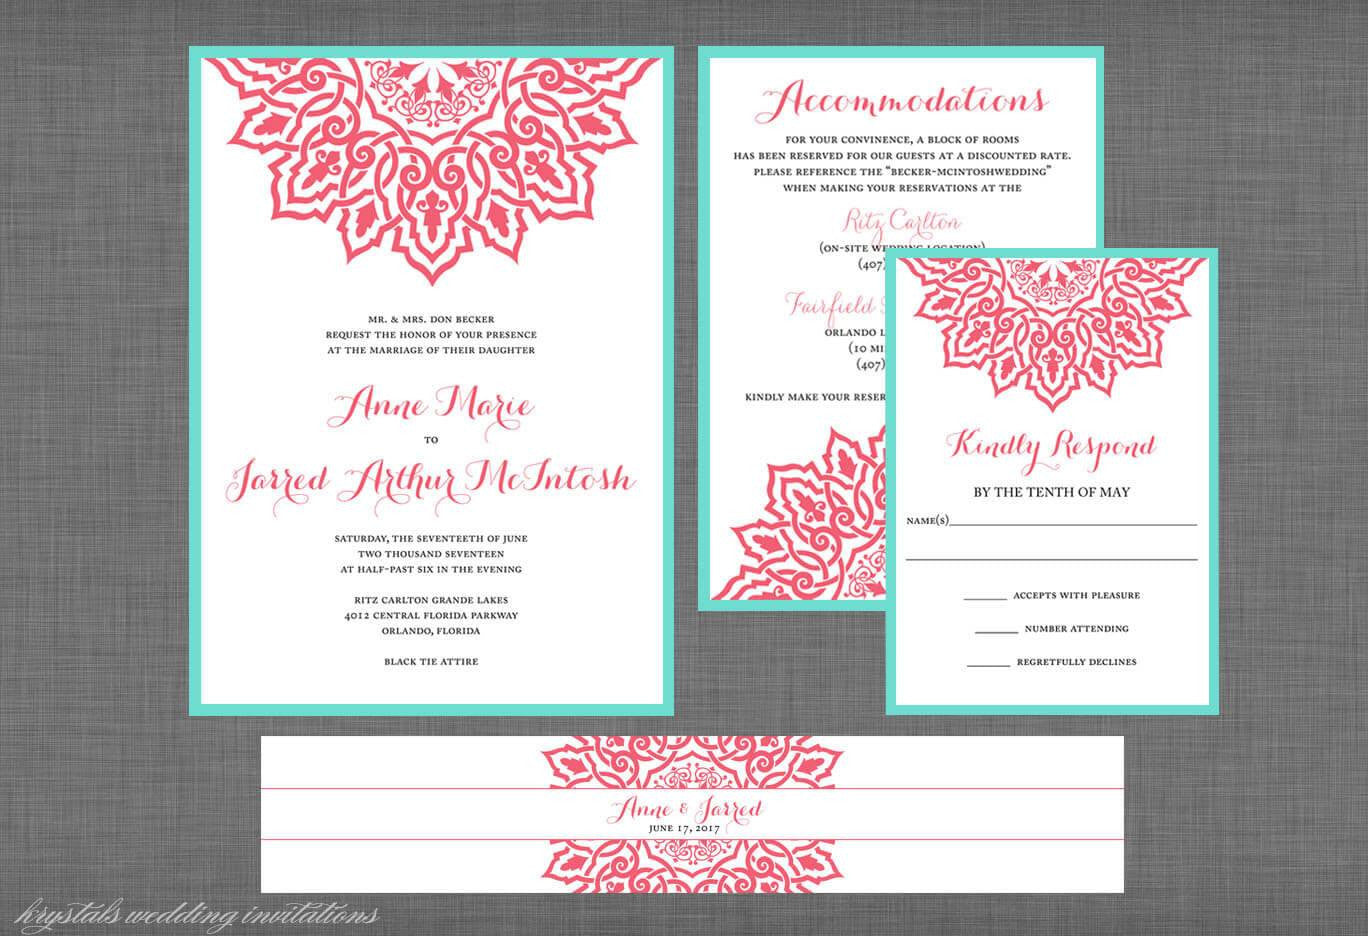 The Anne Marie Suite Vintage Lace Inspired Wedding Invitation Krystals Invitations: Lace Inspired Wedding Invitations At Websimilar.org